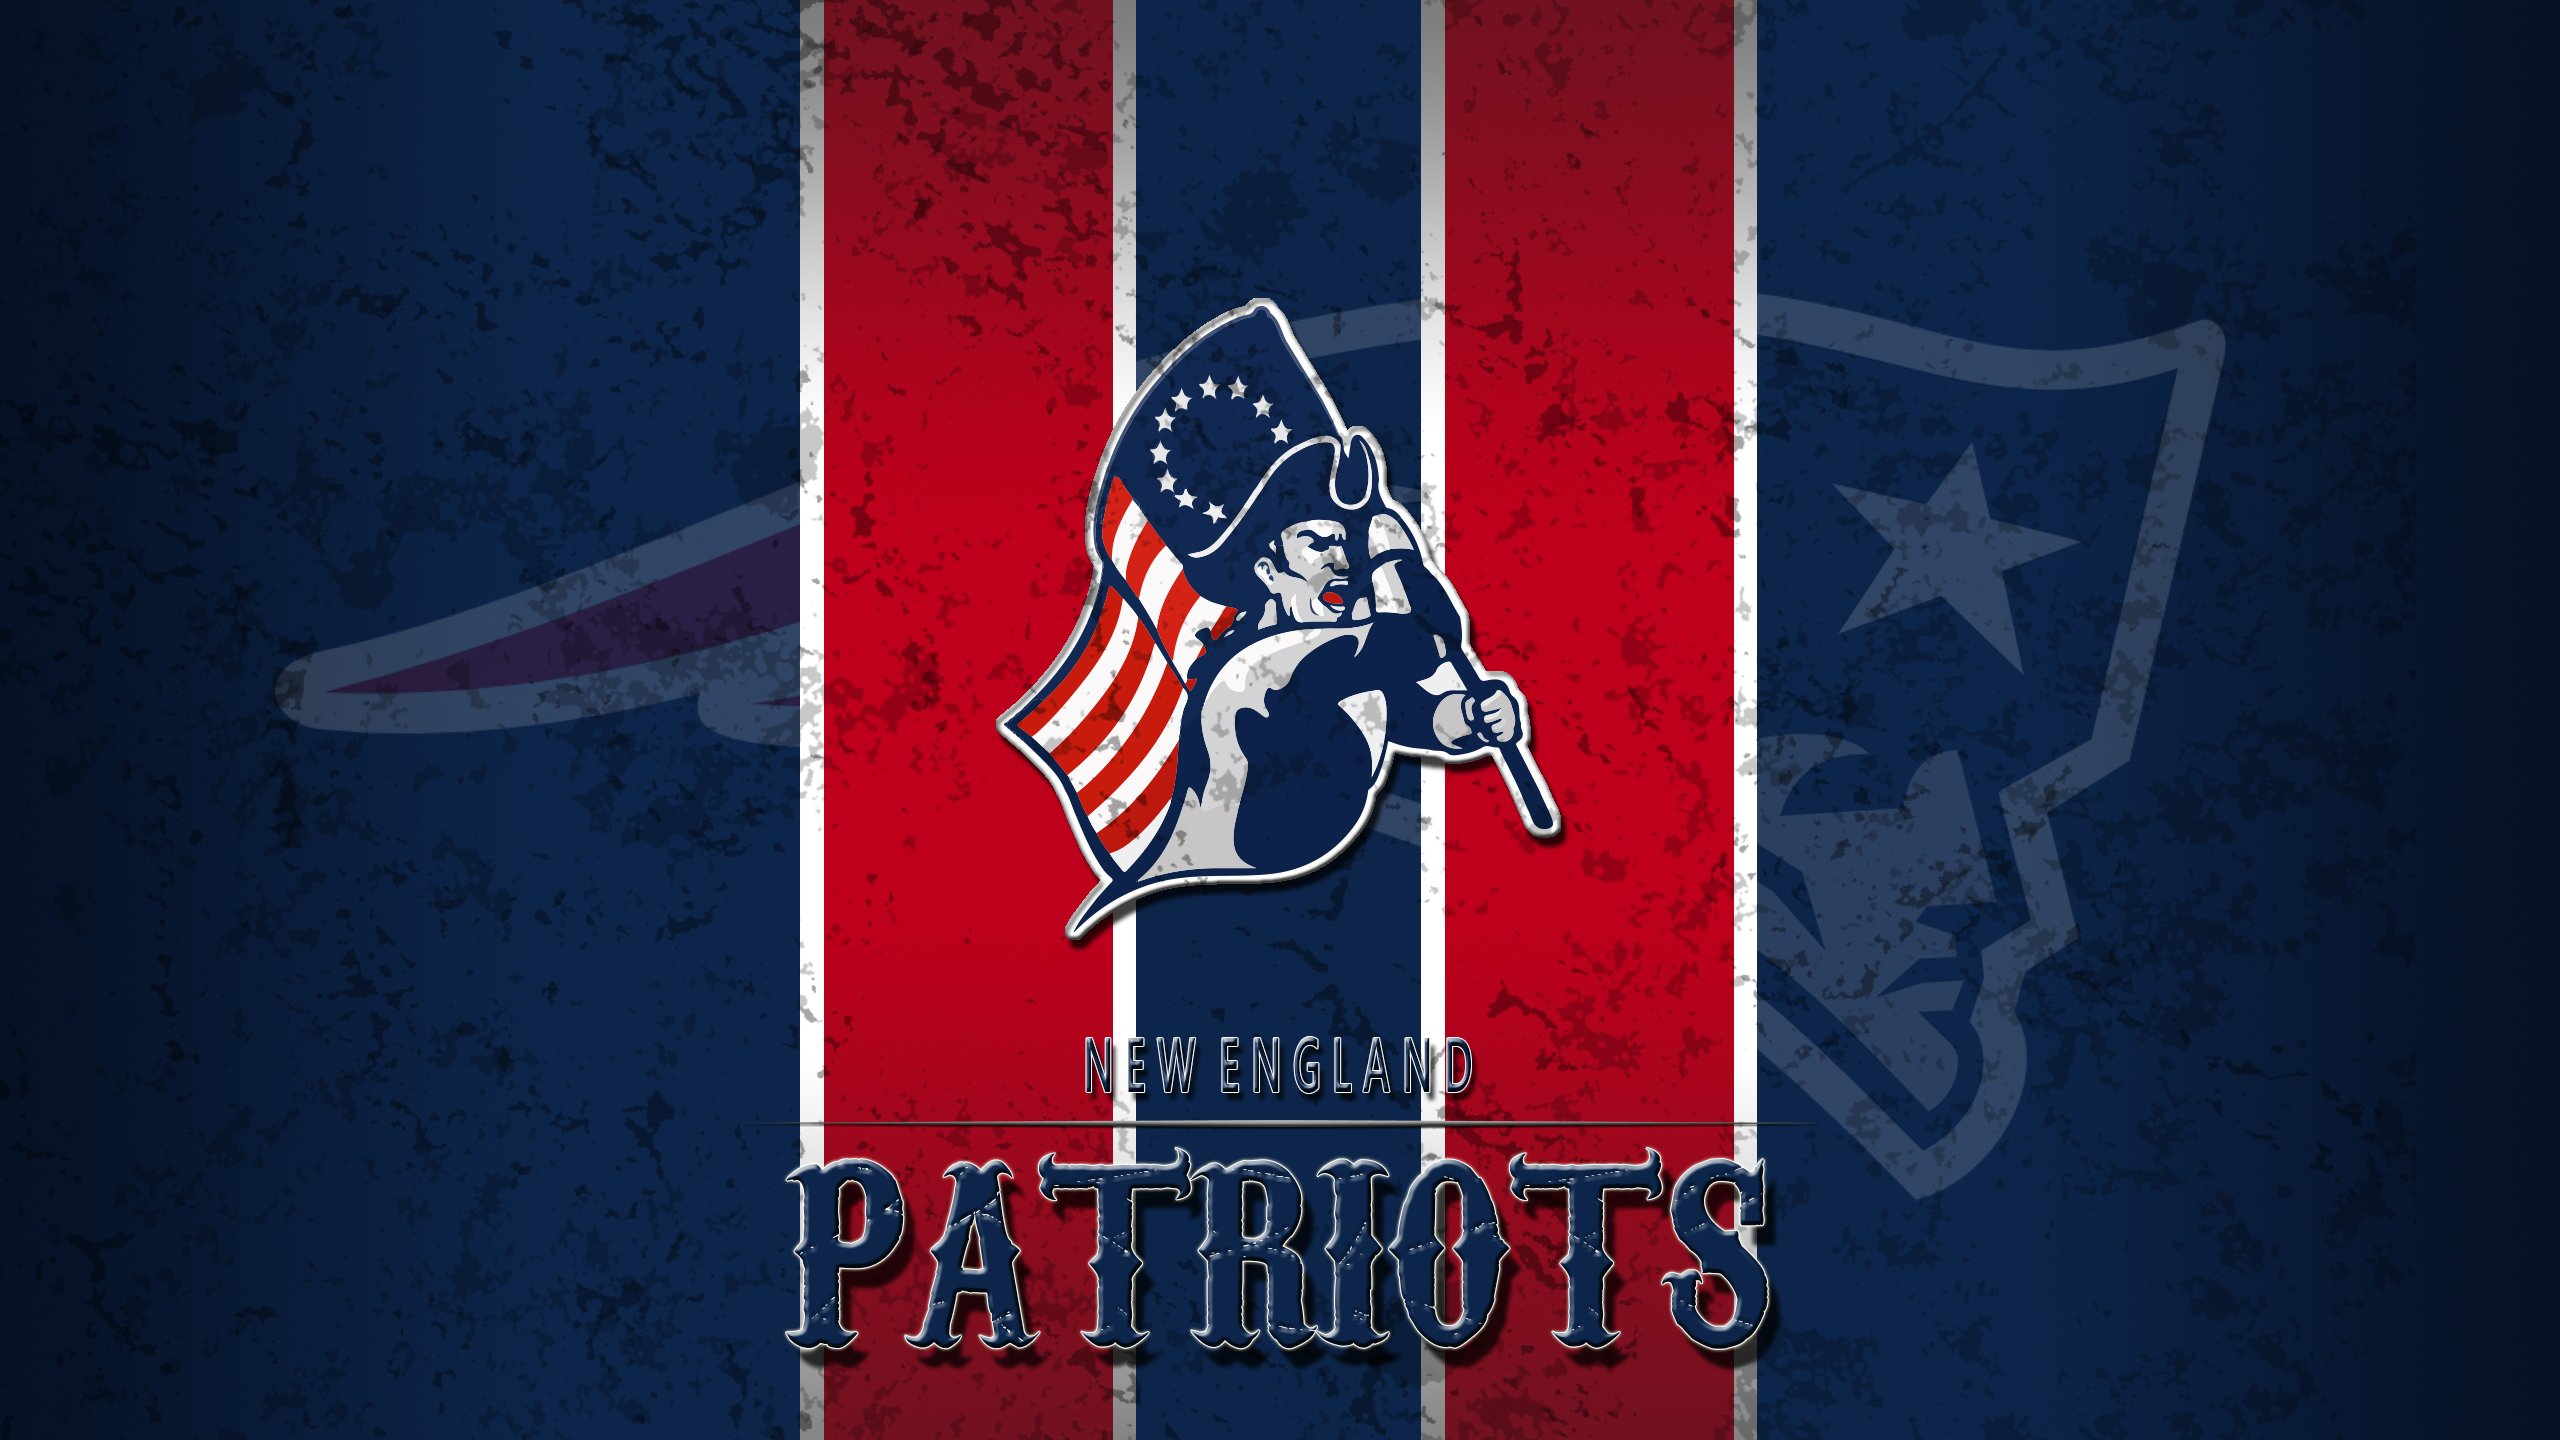 New England Patriots Screensaver Wallpaper   2560x1440